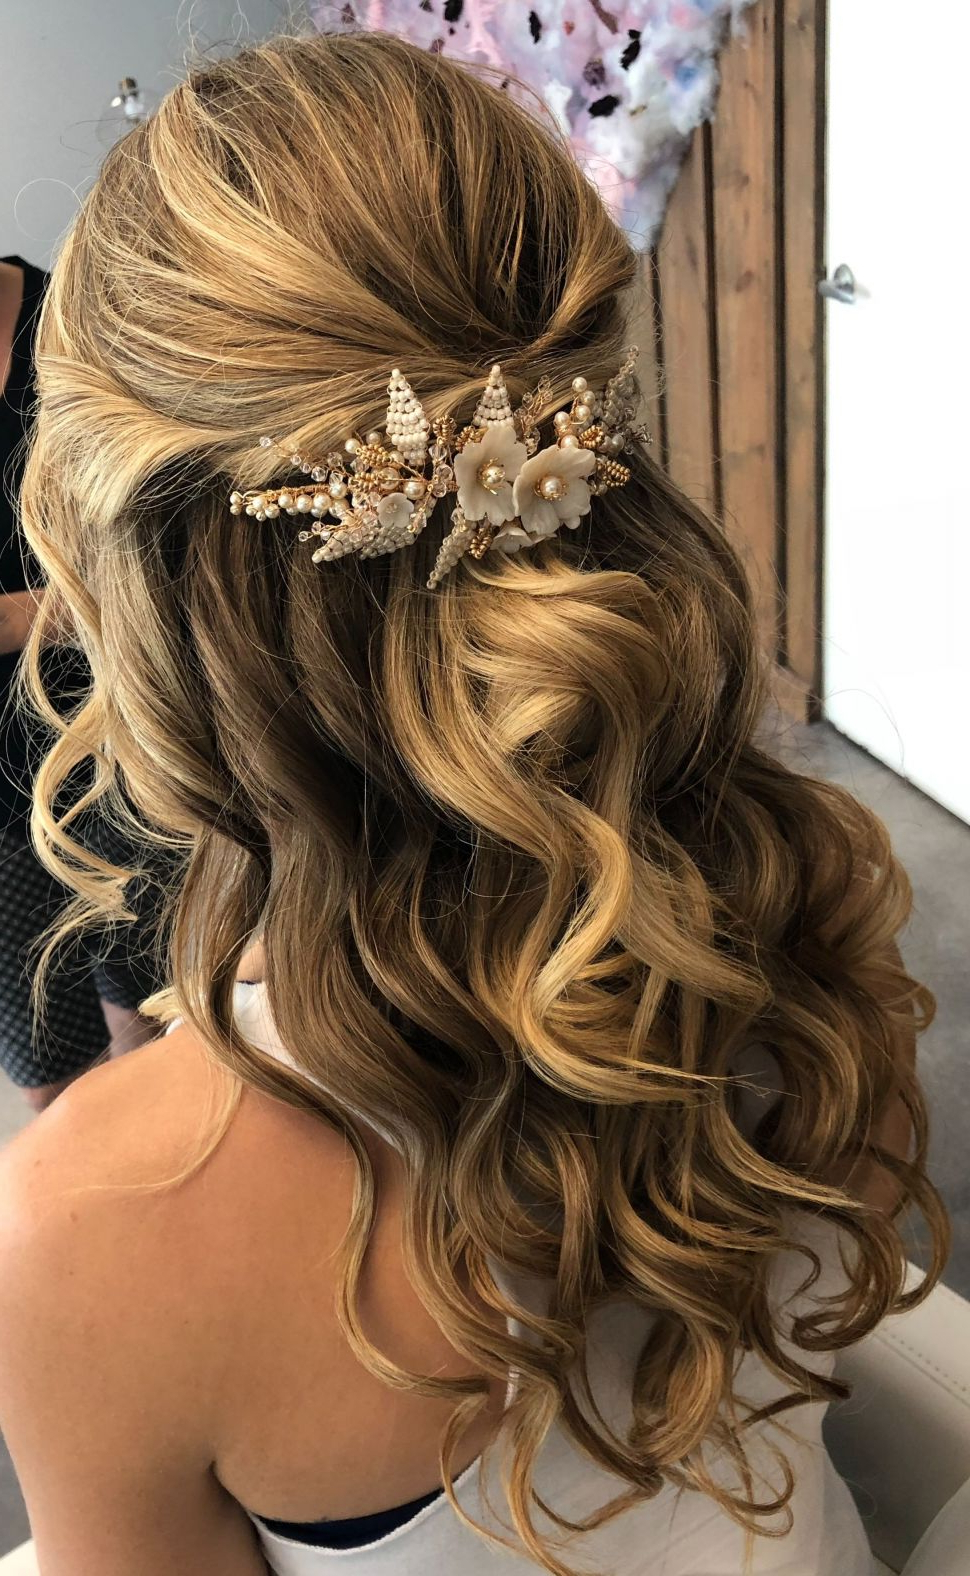 Preferred Long Half Updo Hairstyles With Accessories Regarding Hairstyles : Half Up Half Down Updo Hairstyles Ravishing (View 4 of 20)